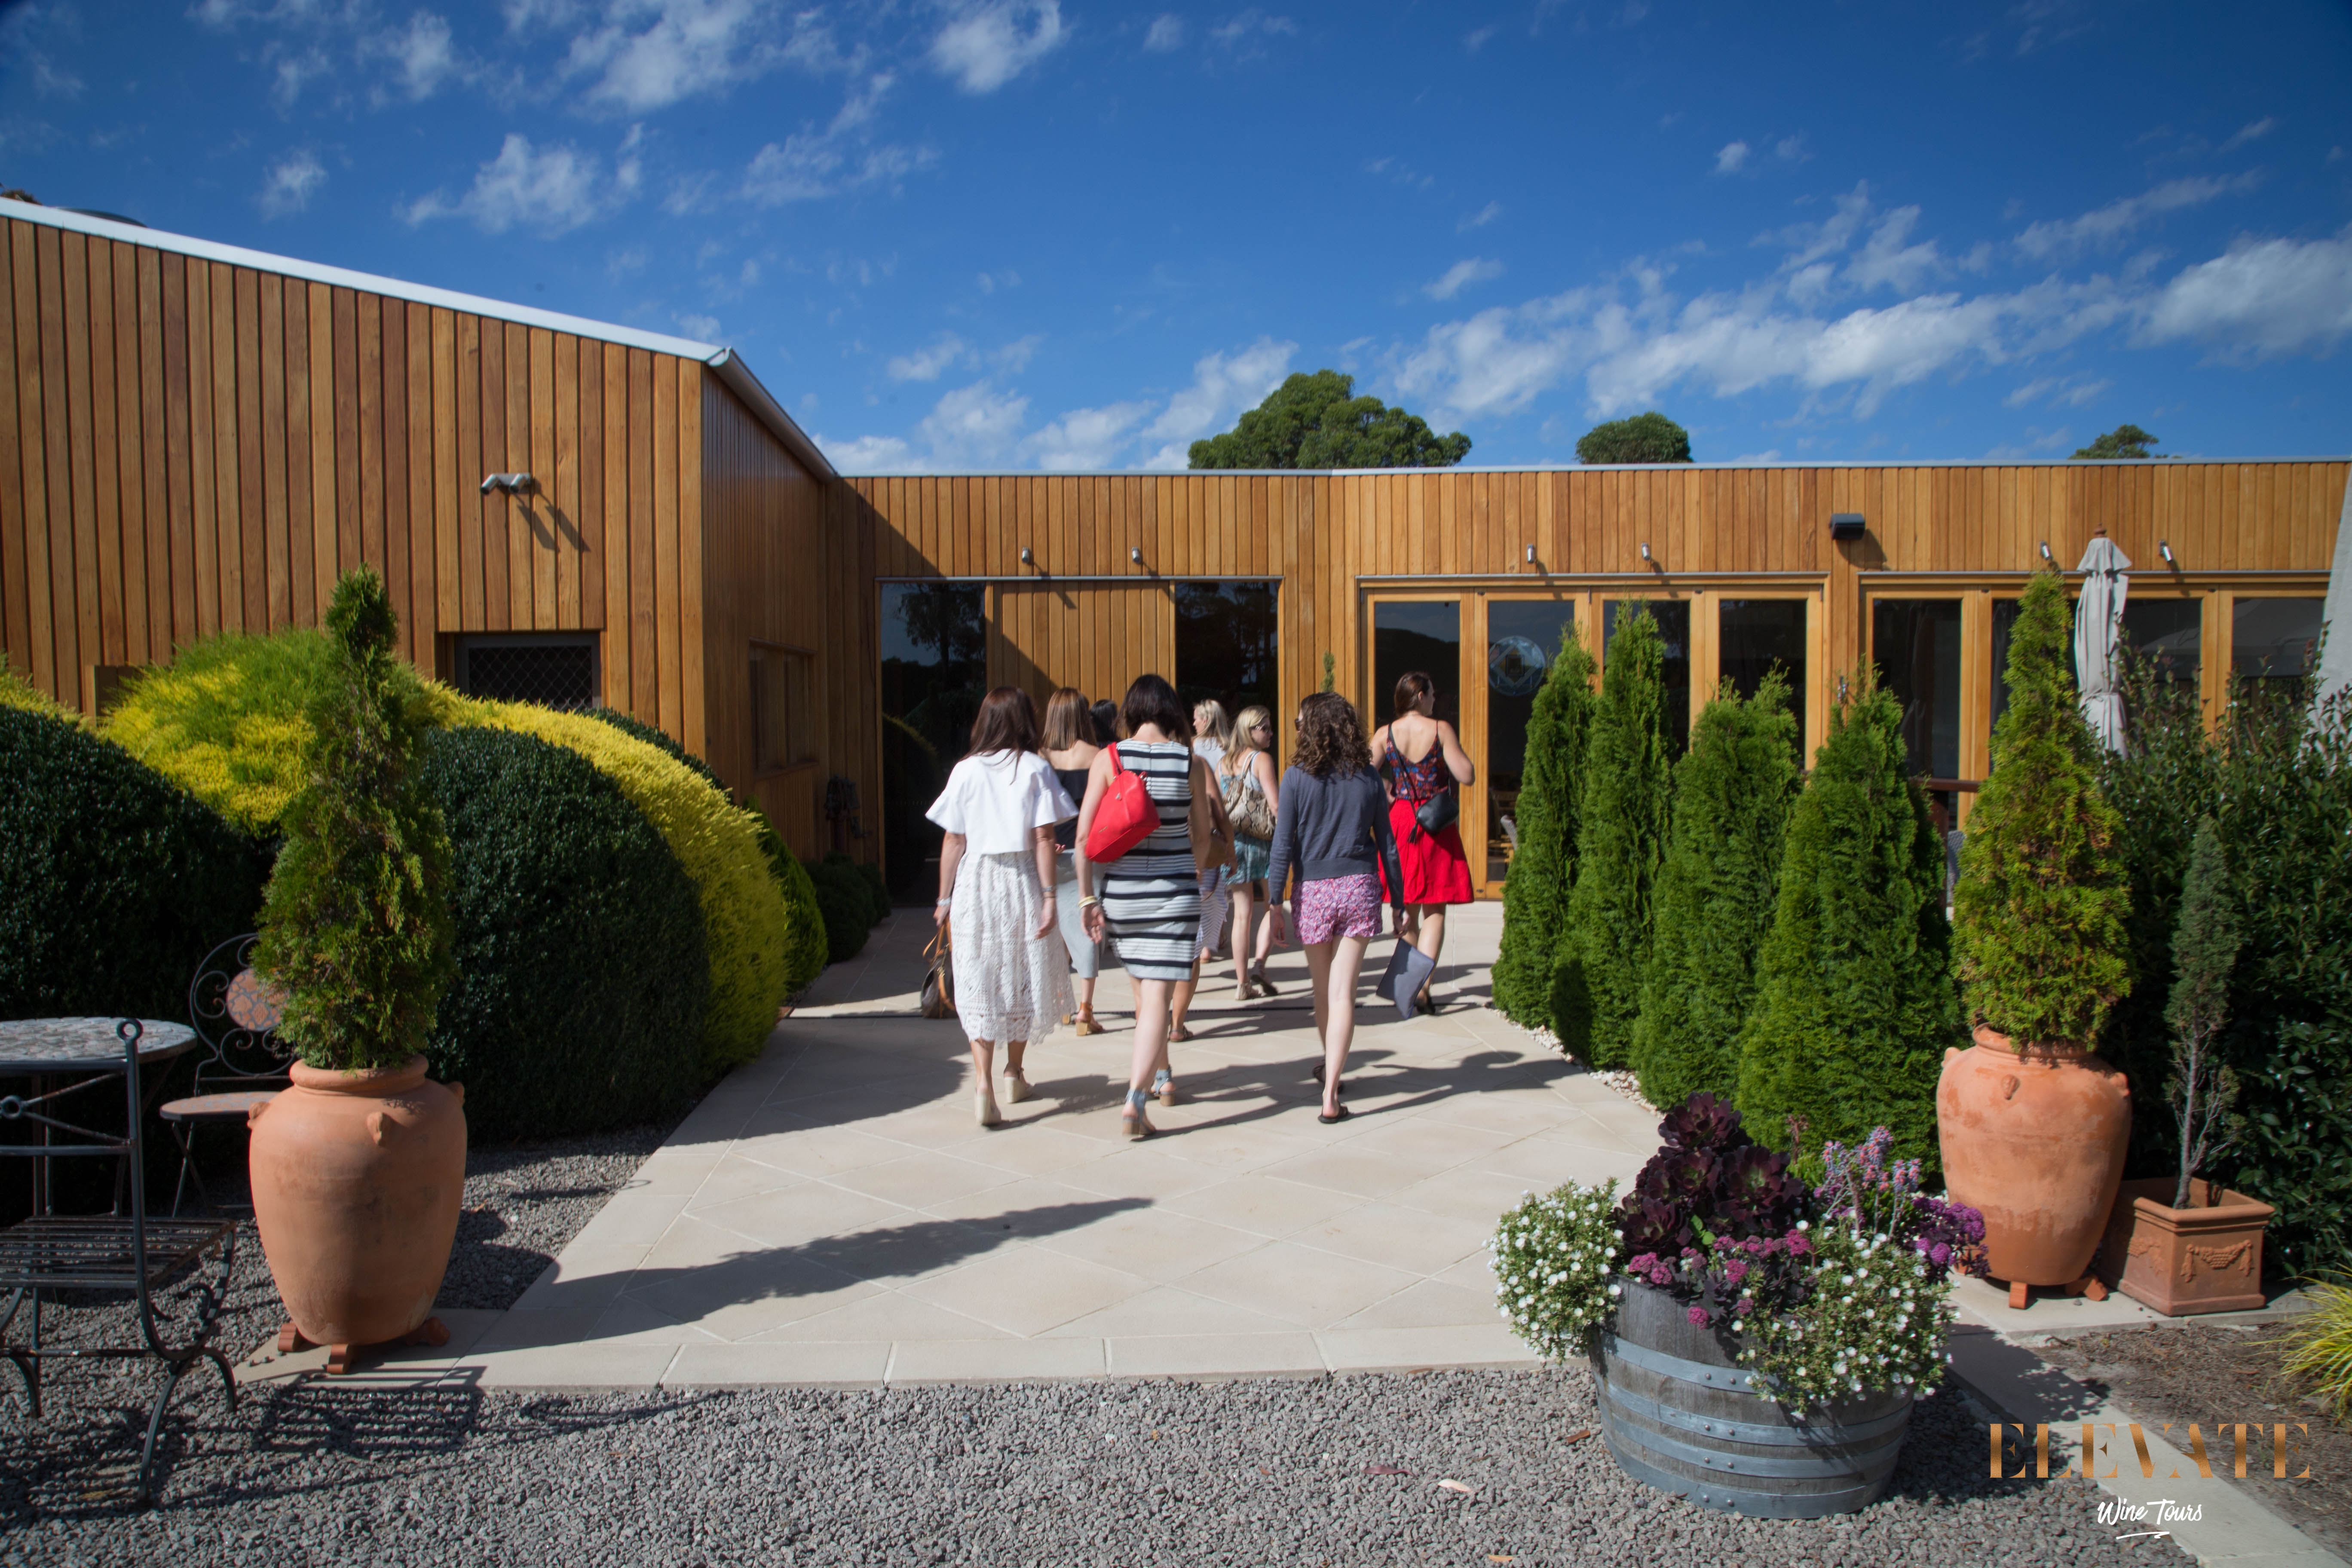 Walking in to the cellar door to try some wine at Stumpy Gully Vineyard